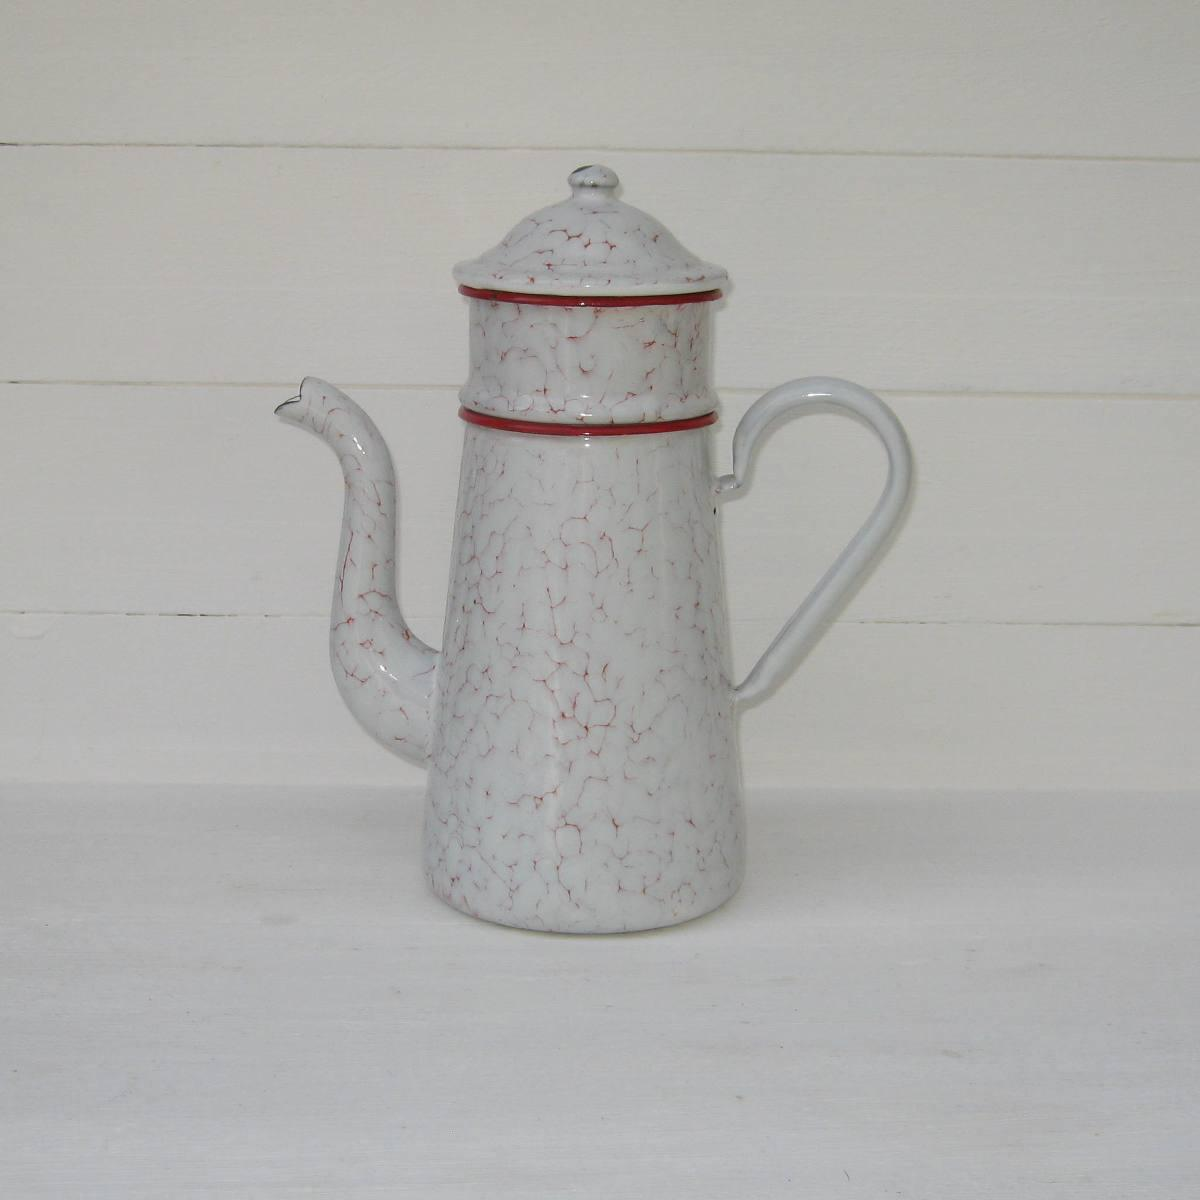 Ancienne cafetiere tole emaillee marbree rouge et blanche 1